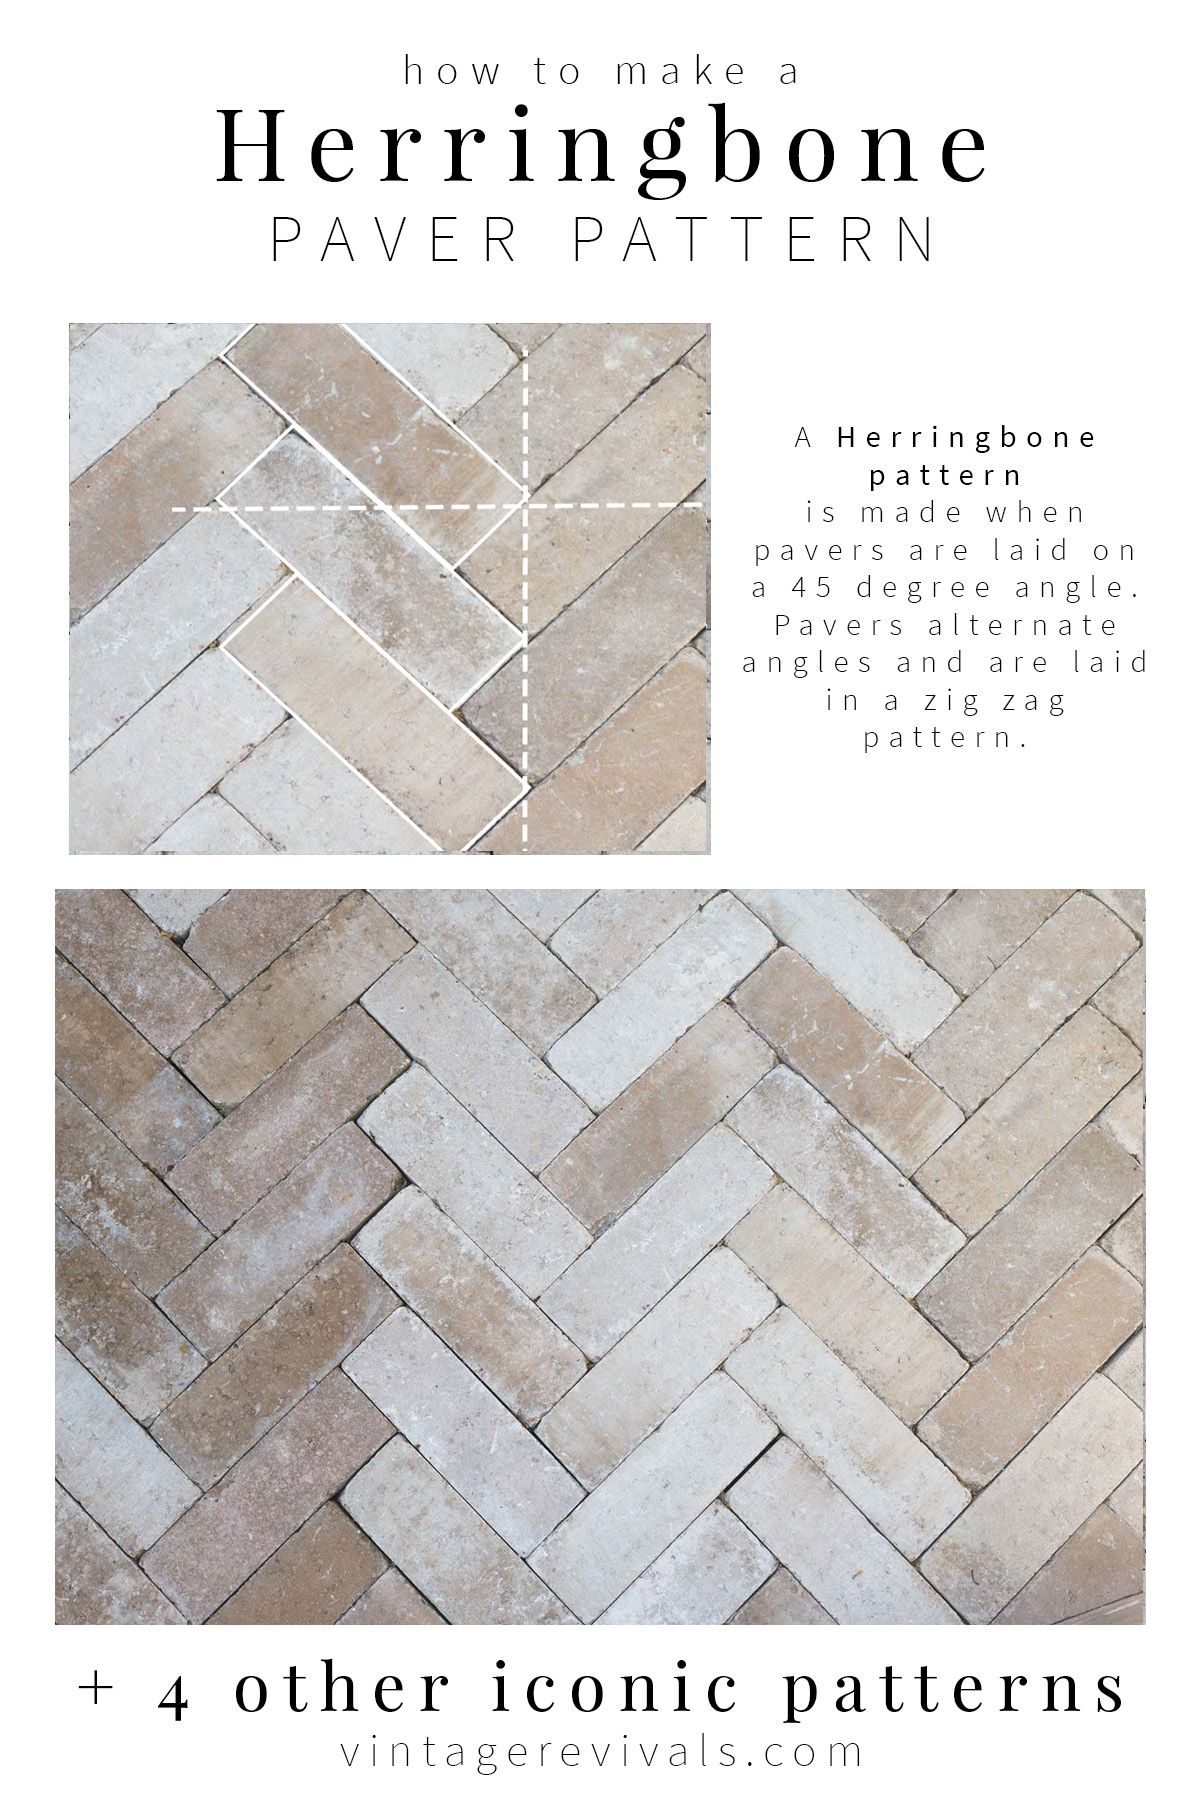 5 Iconic Paver Patterns You Can Diy With Images Paver Patterns